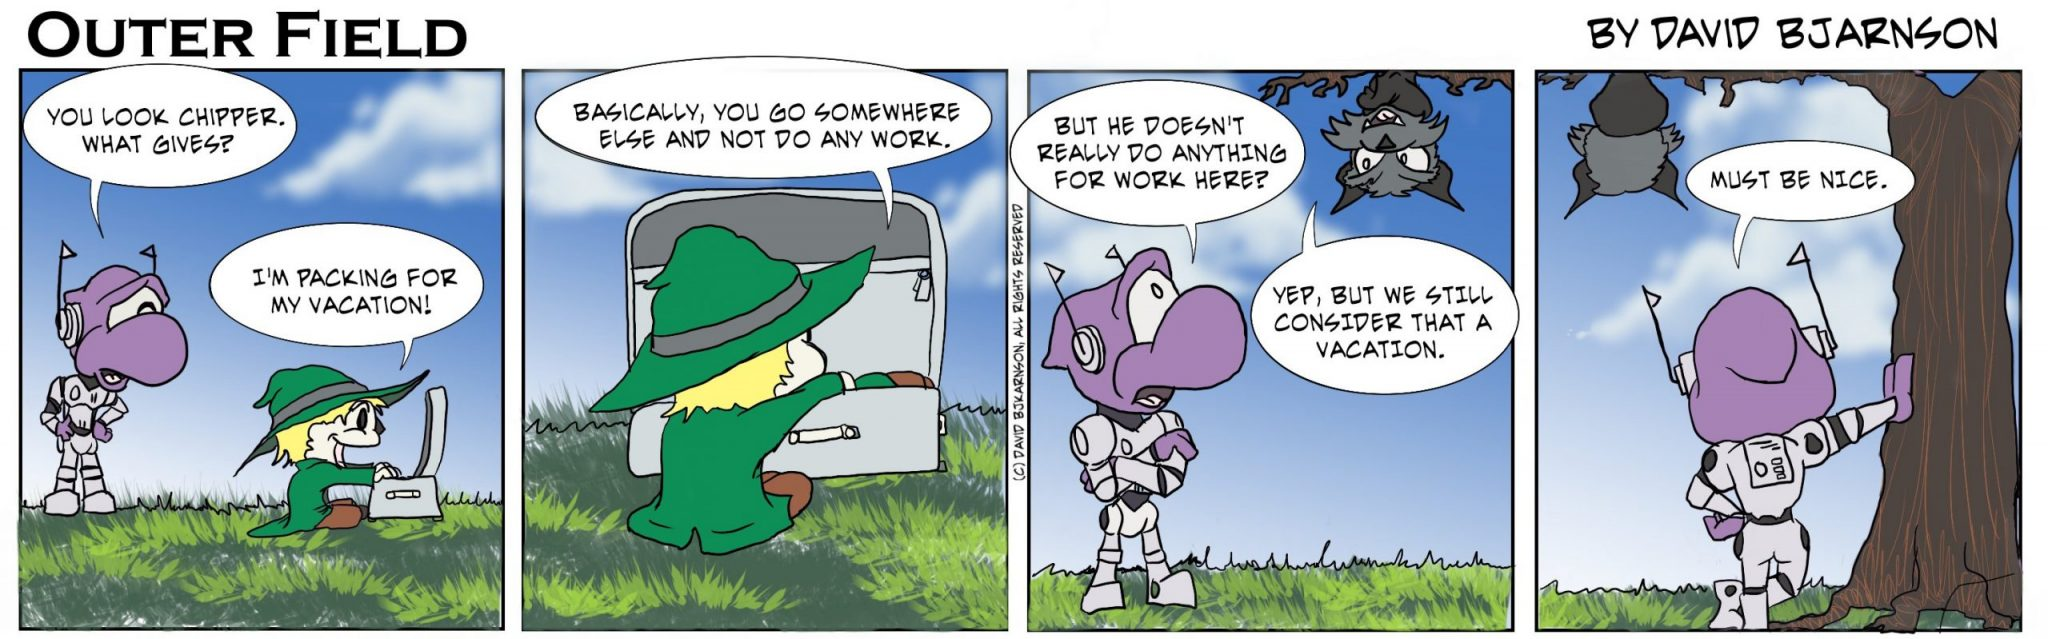 Ace the scarecrow explains to Al what a vacation is.